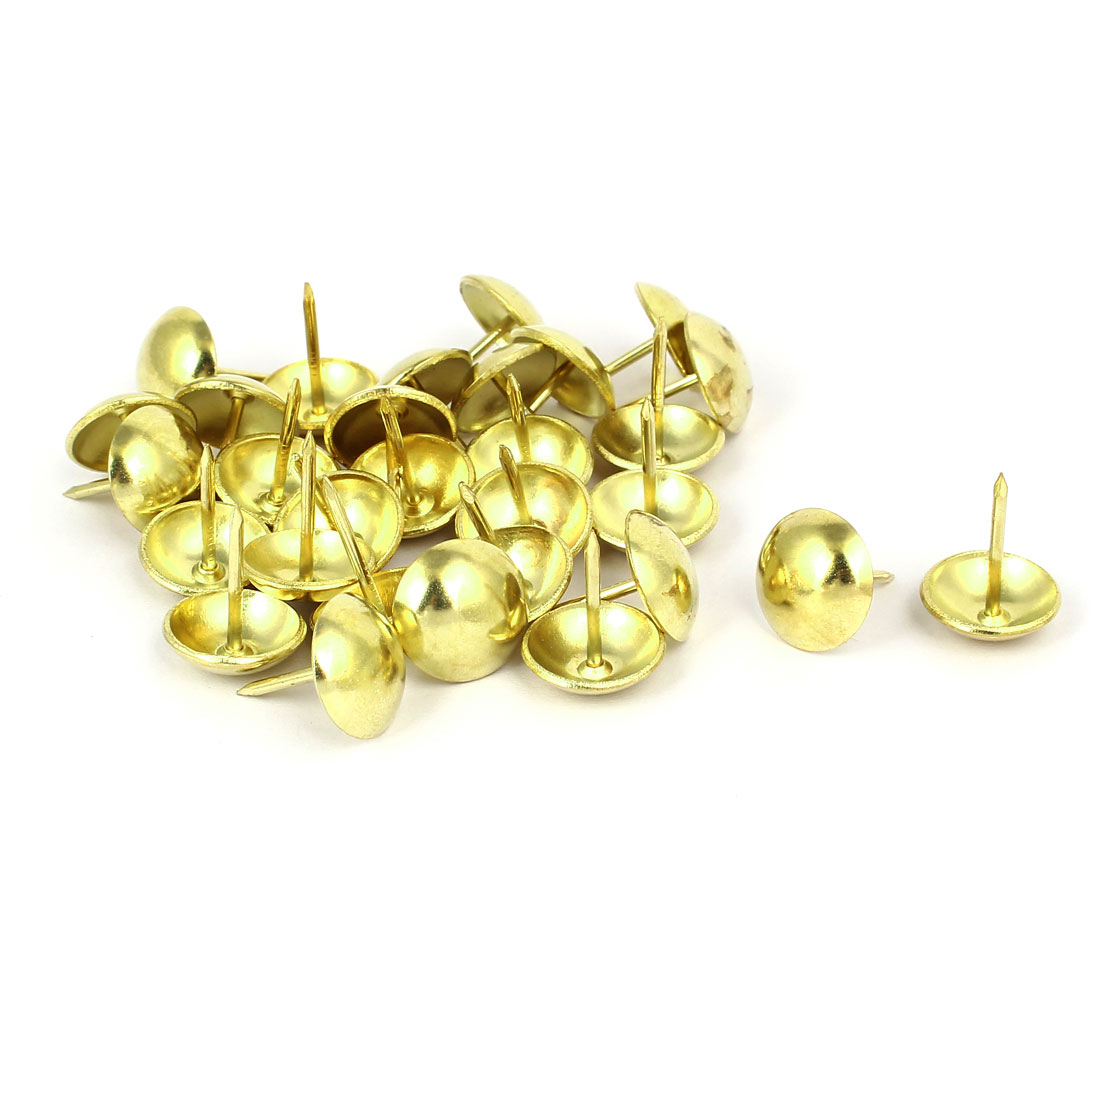 Home Metal Domed Shaped Upholstery Tack Nail Gold Tone 16mm Head Dia 30pcs